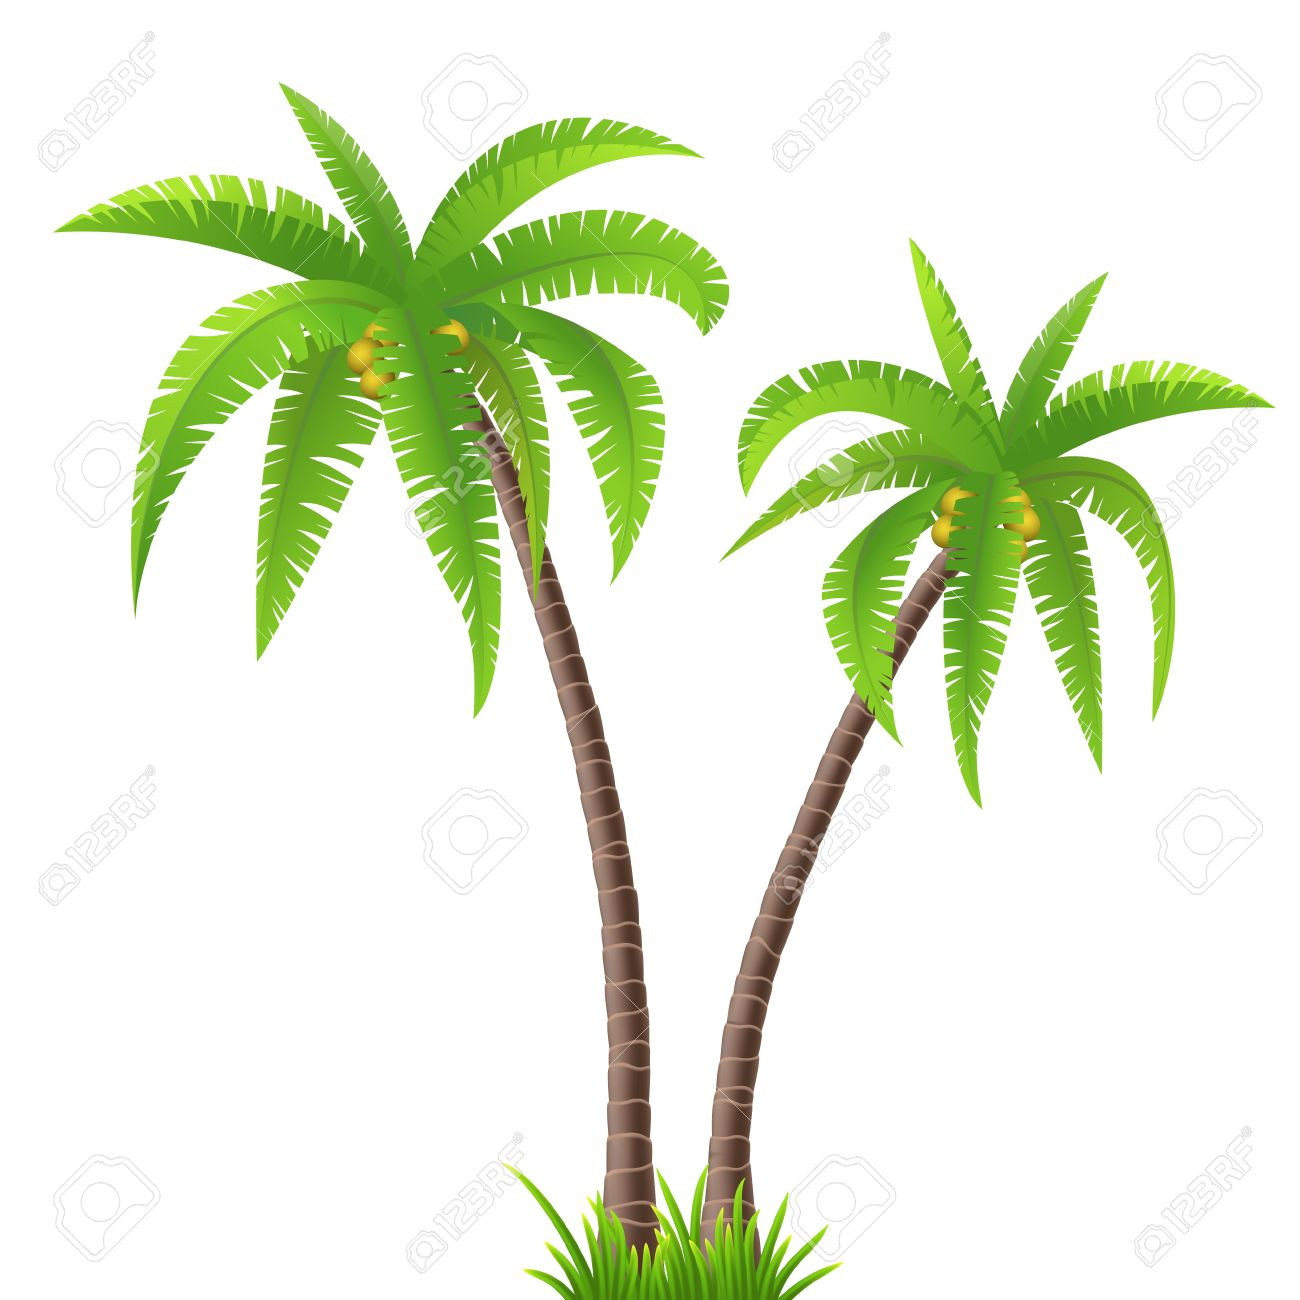 Two coconut palm trees on white background - 39217575